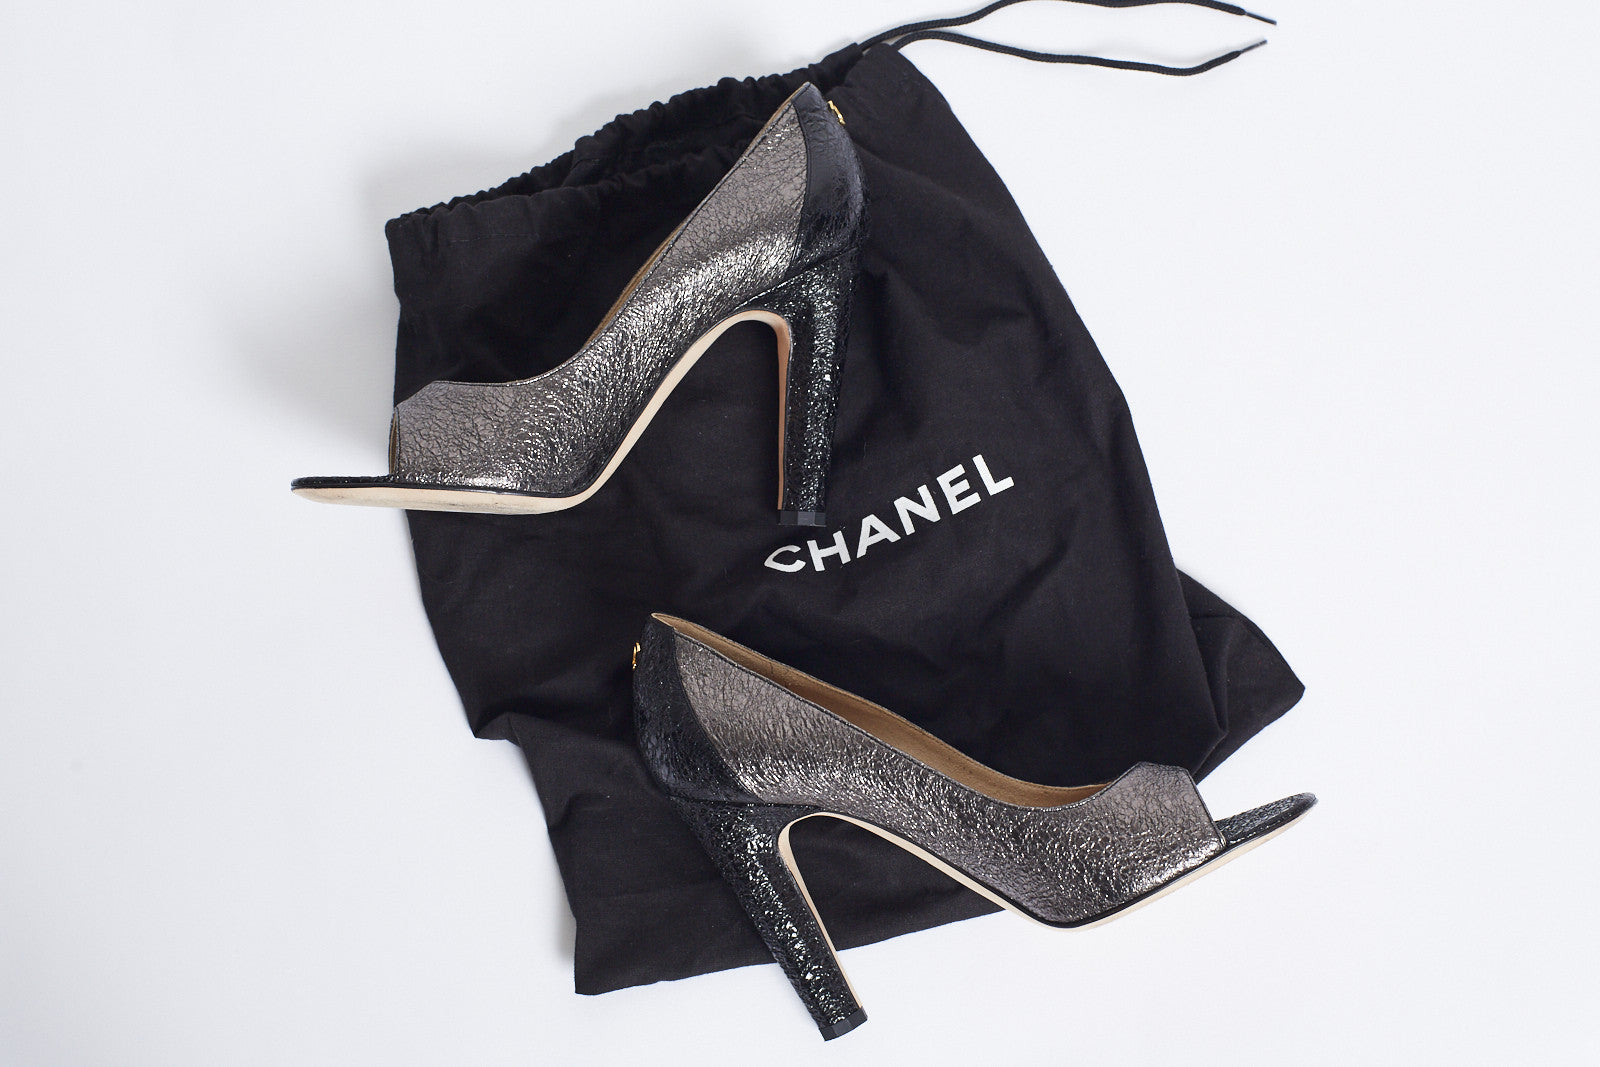 Chanel Metallic Peep-toe Pumps